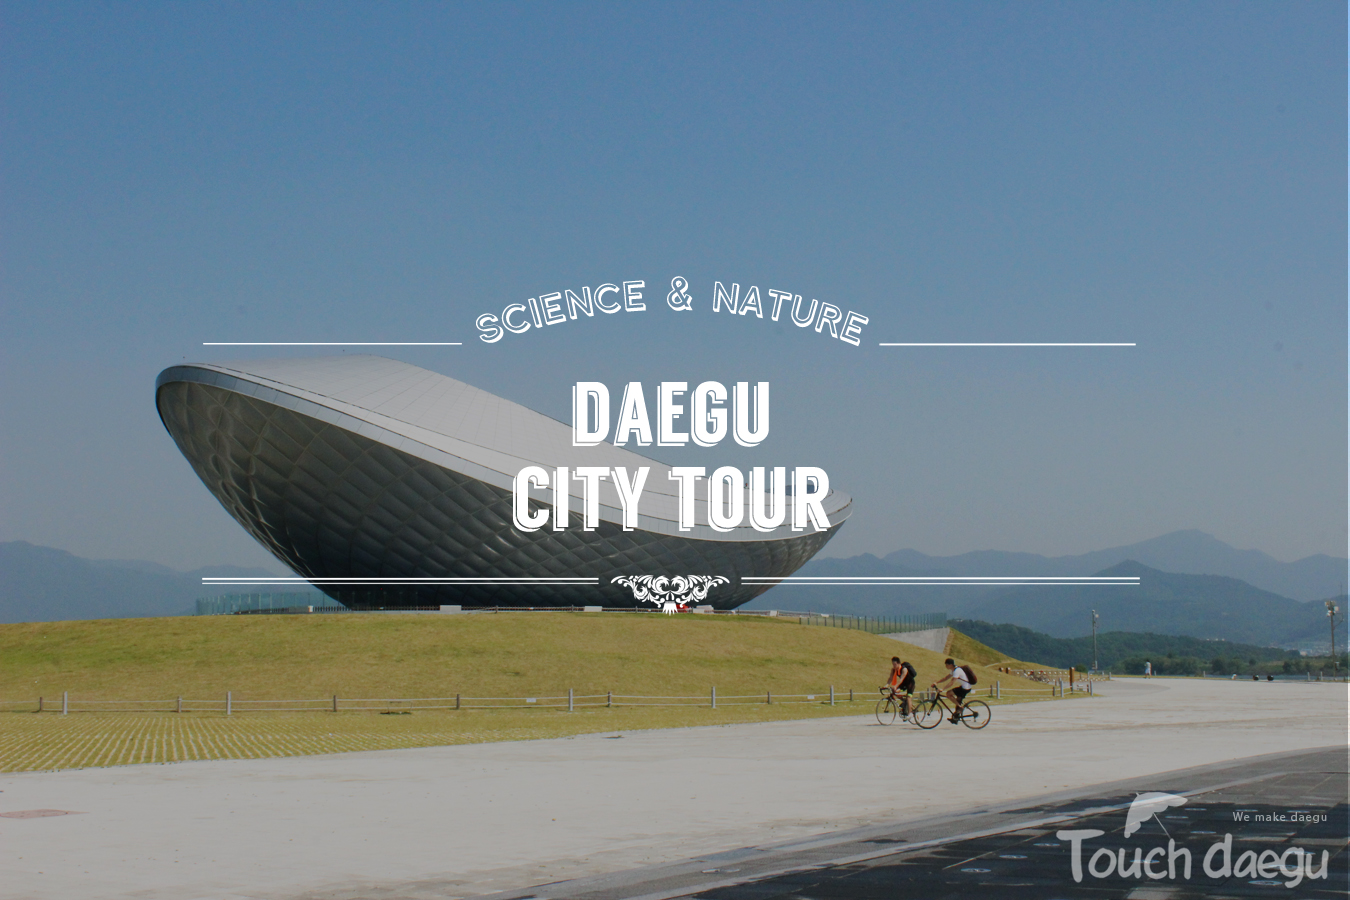 Experiential story of the science & nature course of  Daegu city tour program.